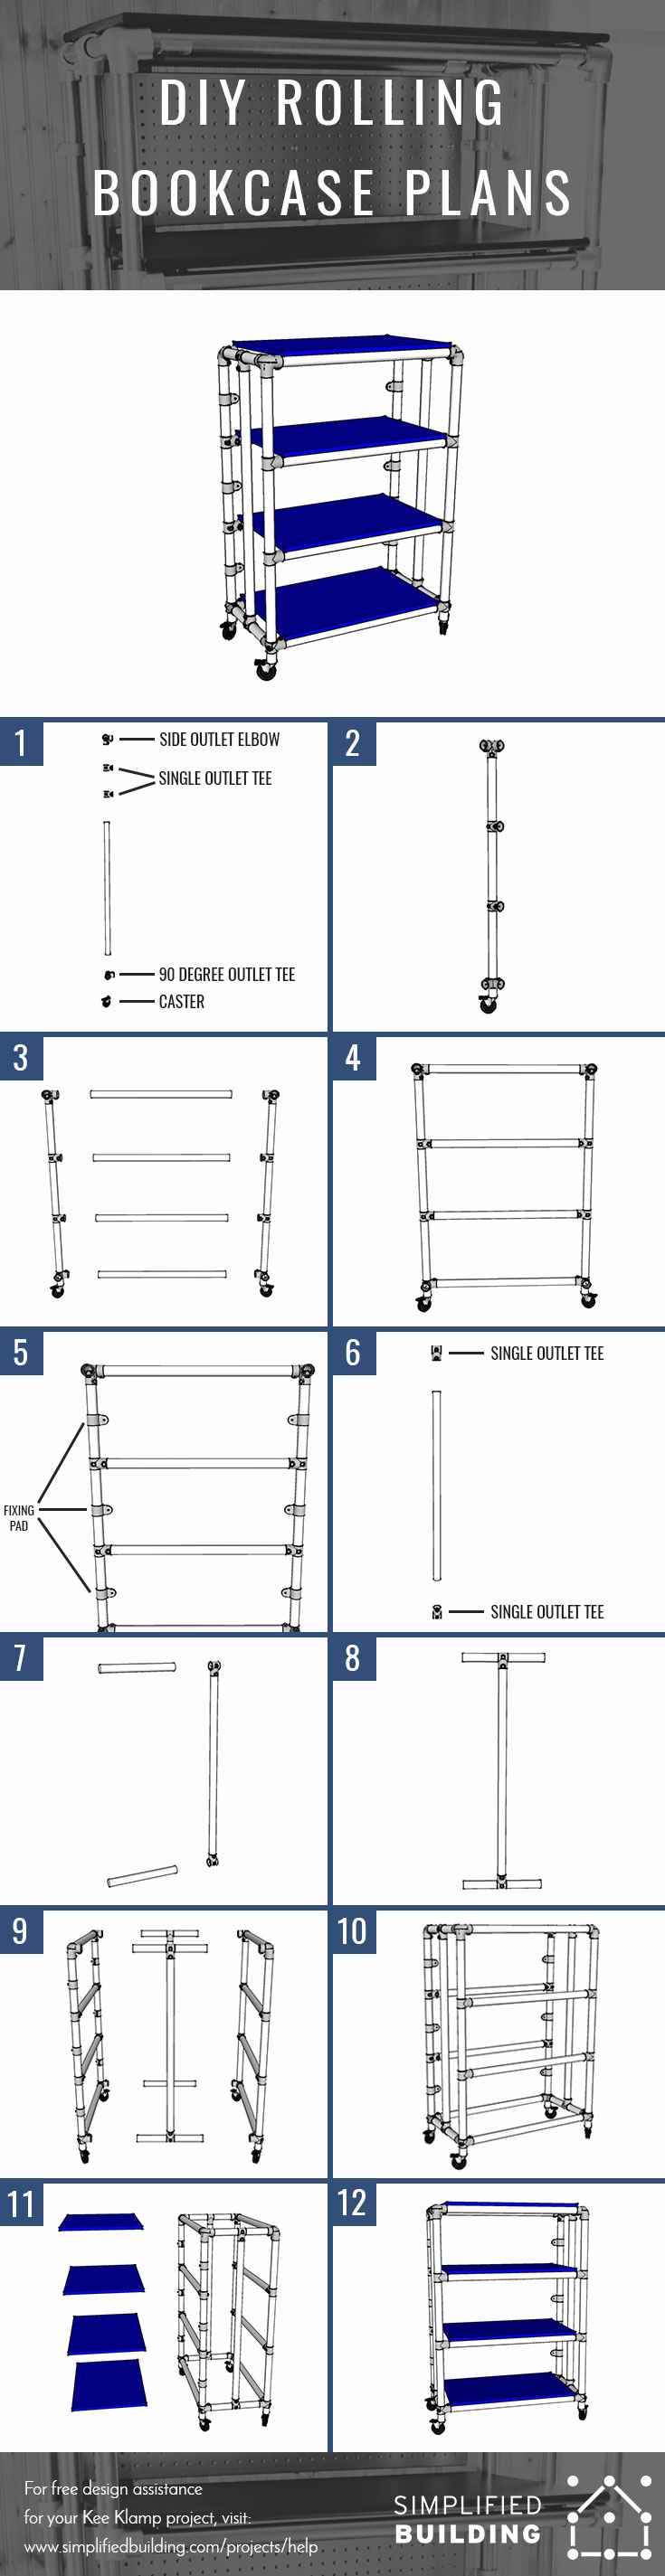 Diy Rolling Bookcase With Step By Step Plans Simplified